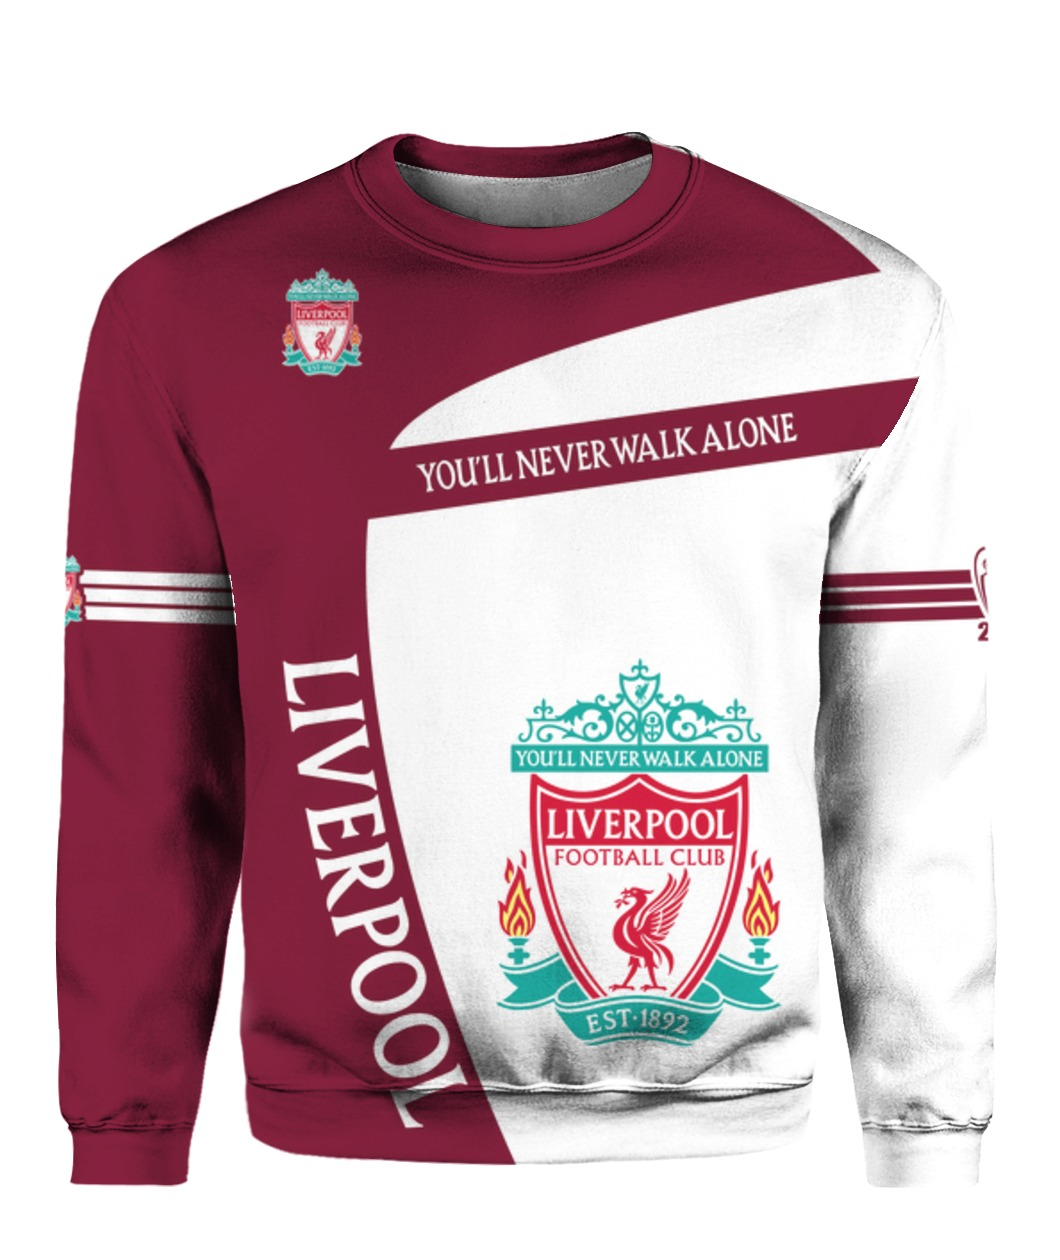 You'll never walk alone liverpool football club all over print sweatshirt - front